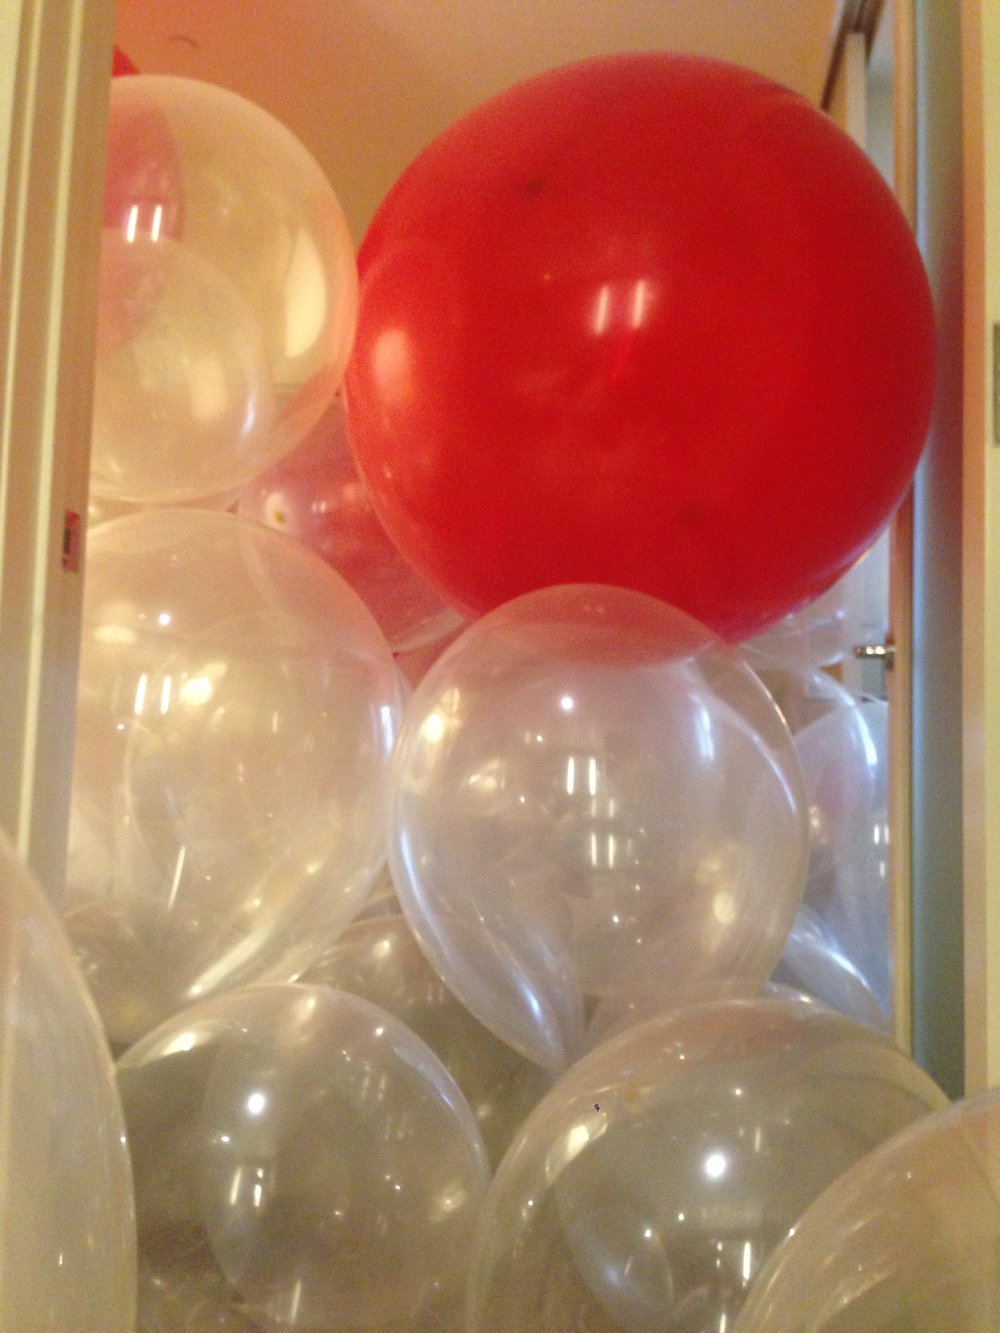 Room full of balloons, prepared by Victoria's devoted sub.